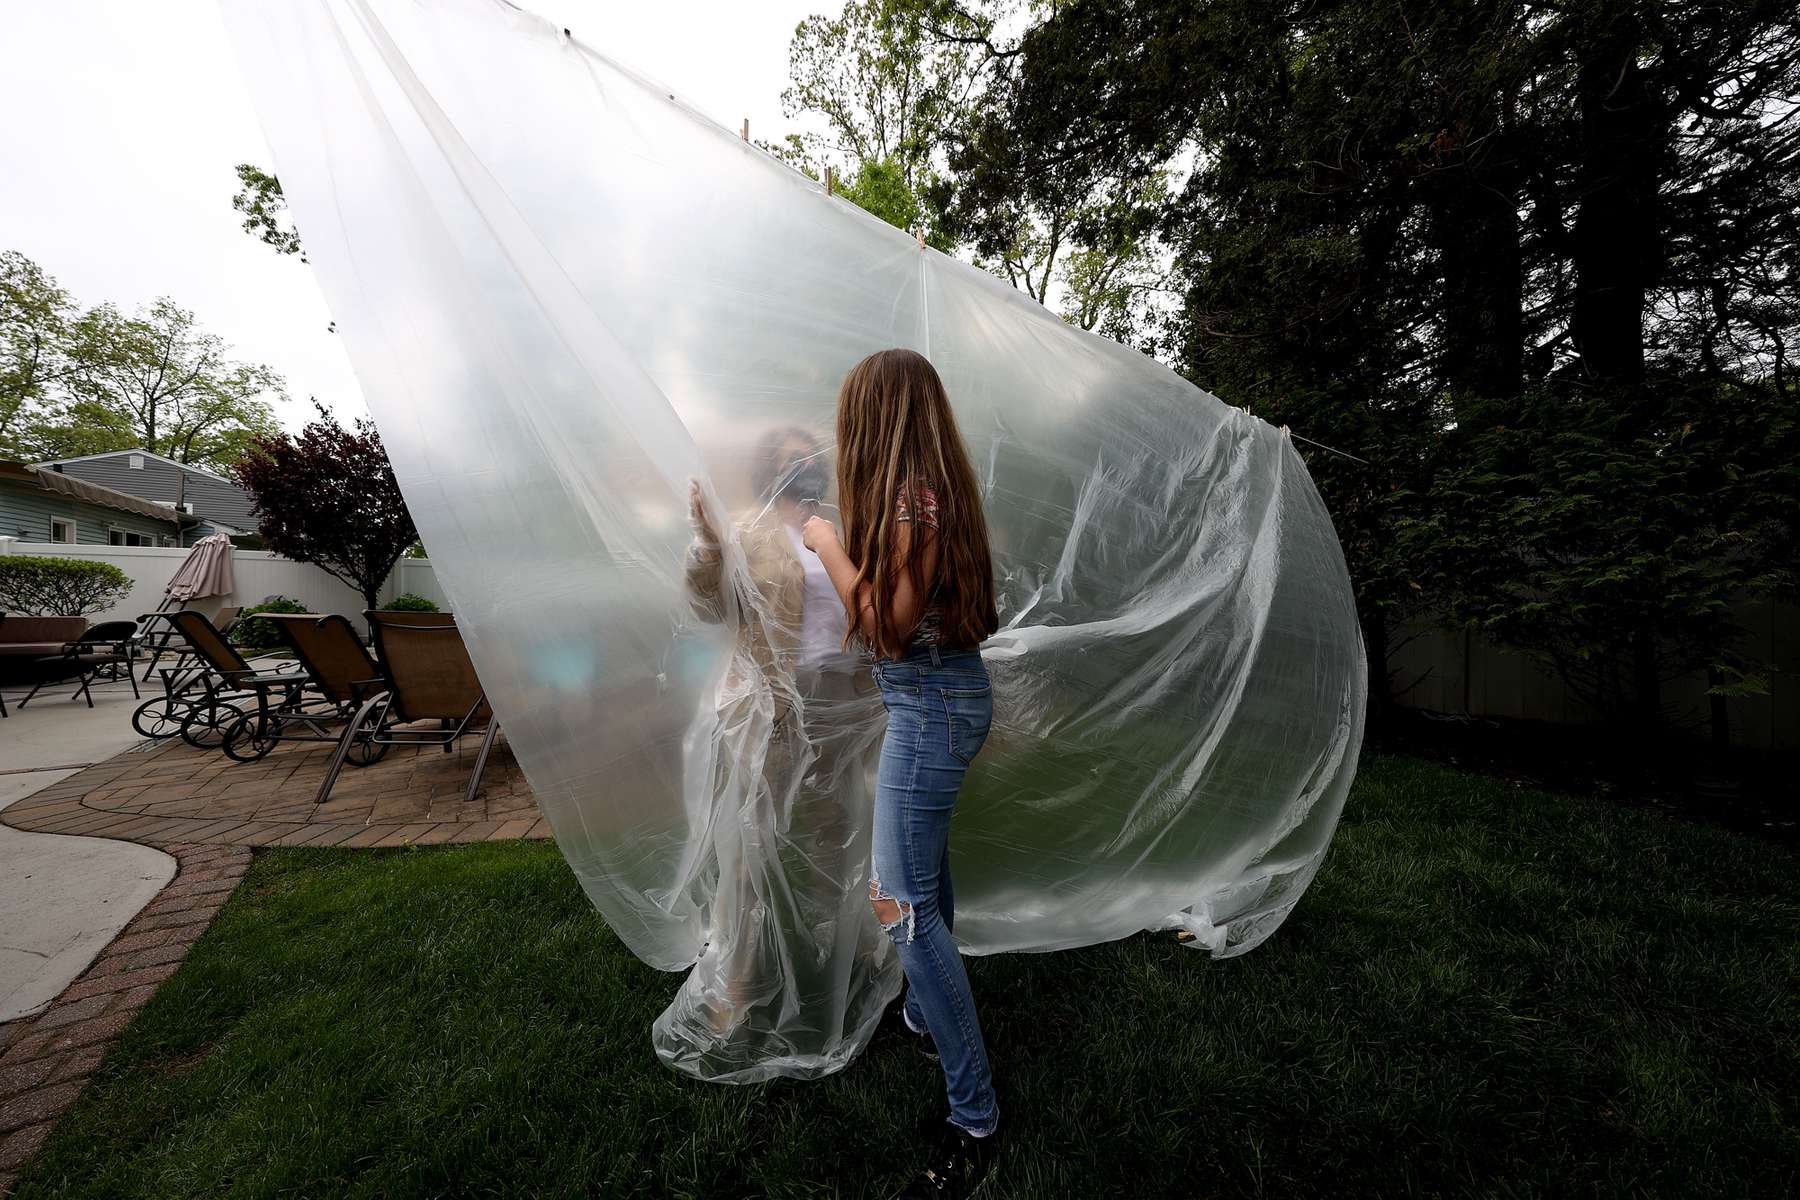 Julia Sileo hugs her Grandmother Mary Grace Sileo through a plastic drop cloth hung up on a homemade clothes line during Memorial Day Weekend on May 24, 2020 in Wantagh, New York.  It is the first time they have had physical contact of any kind since the coronavirus COVID-19 pandemic lockdown started in late February.